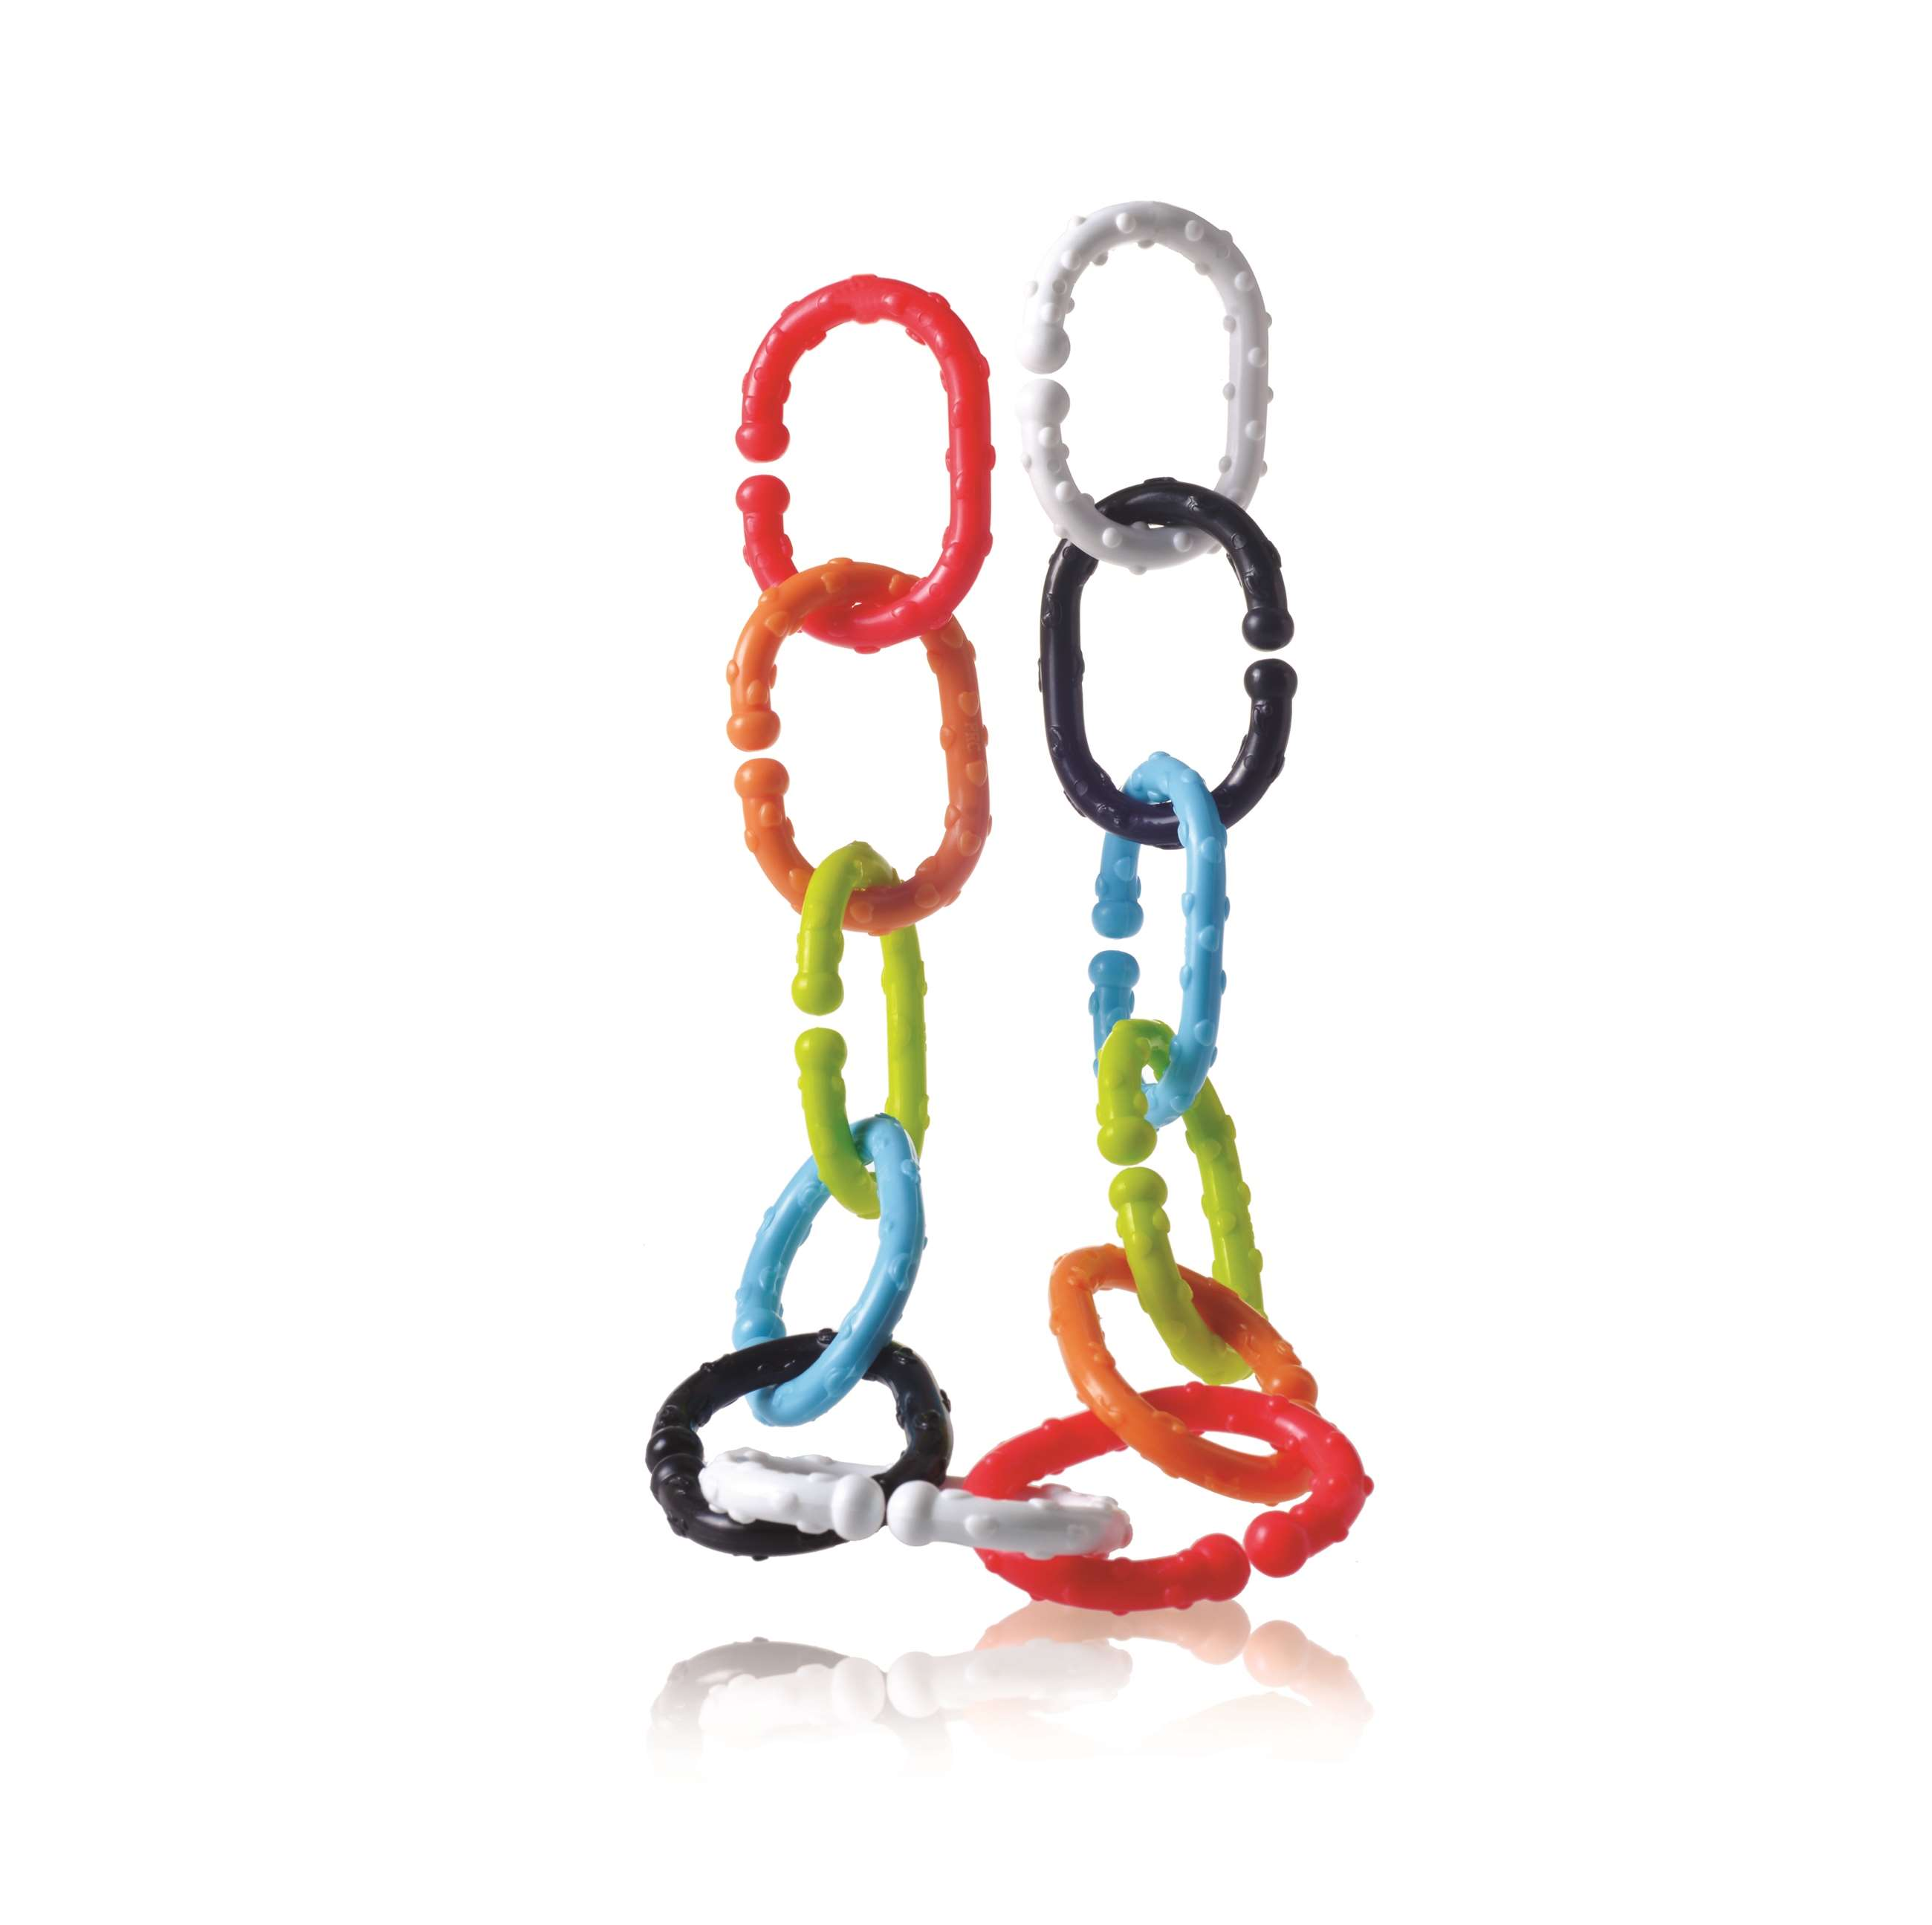 2635 - kidsme baby teething links - 9467